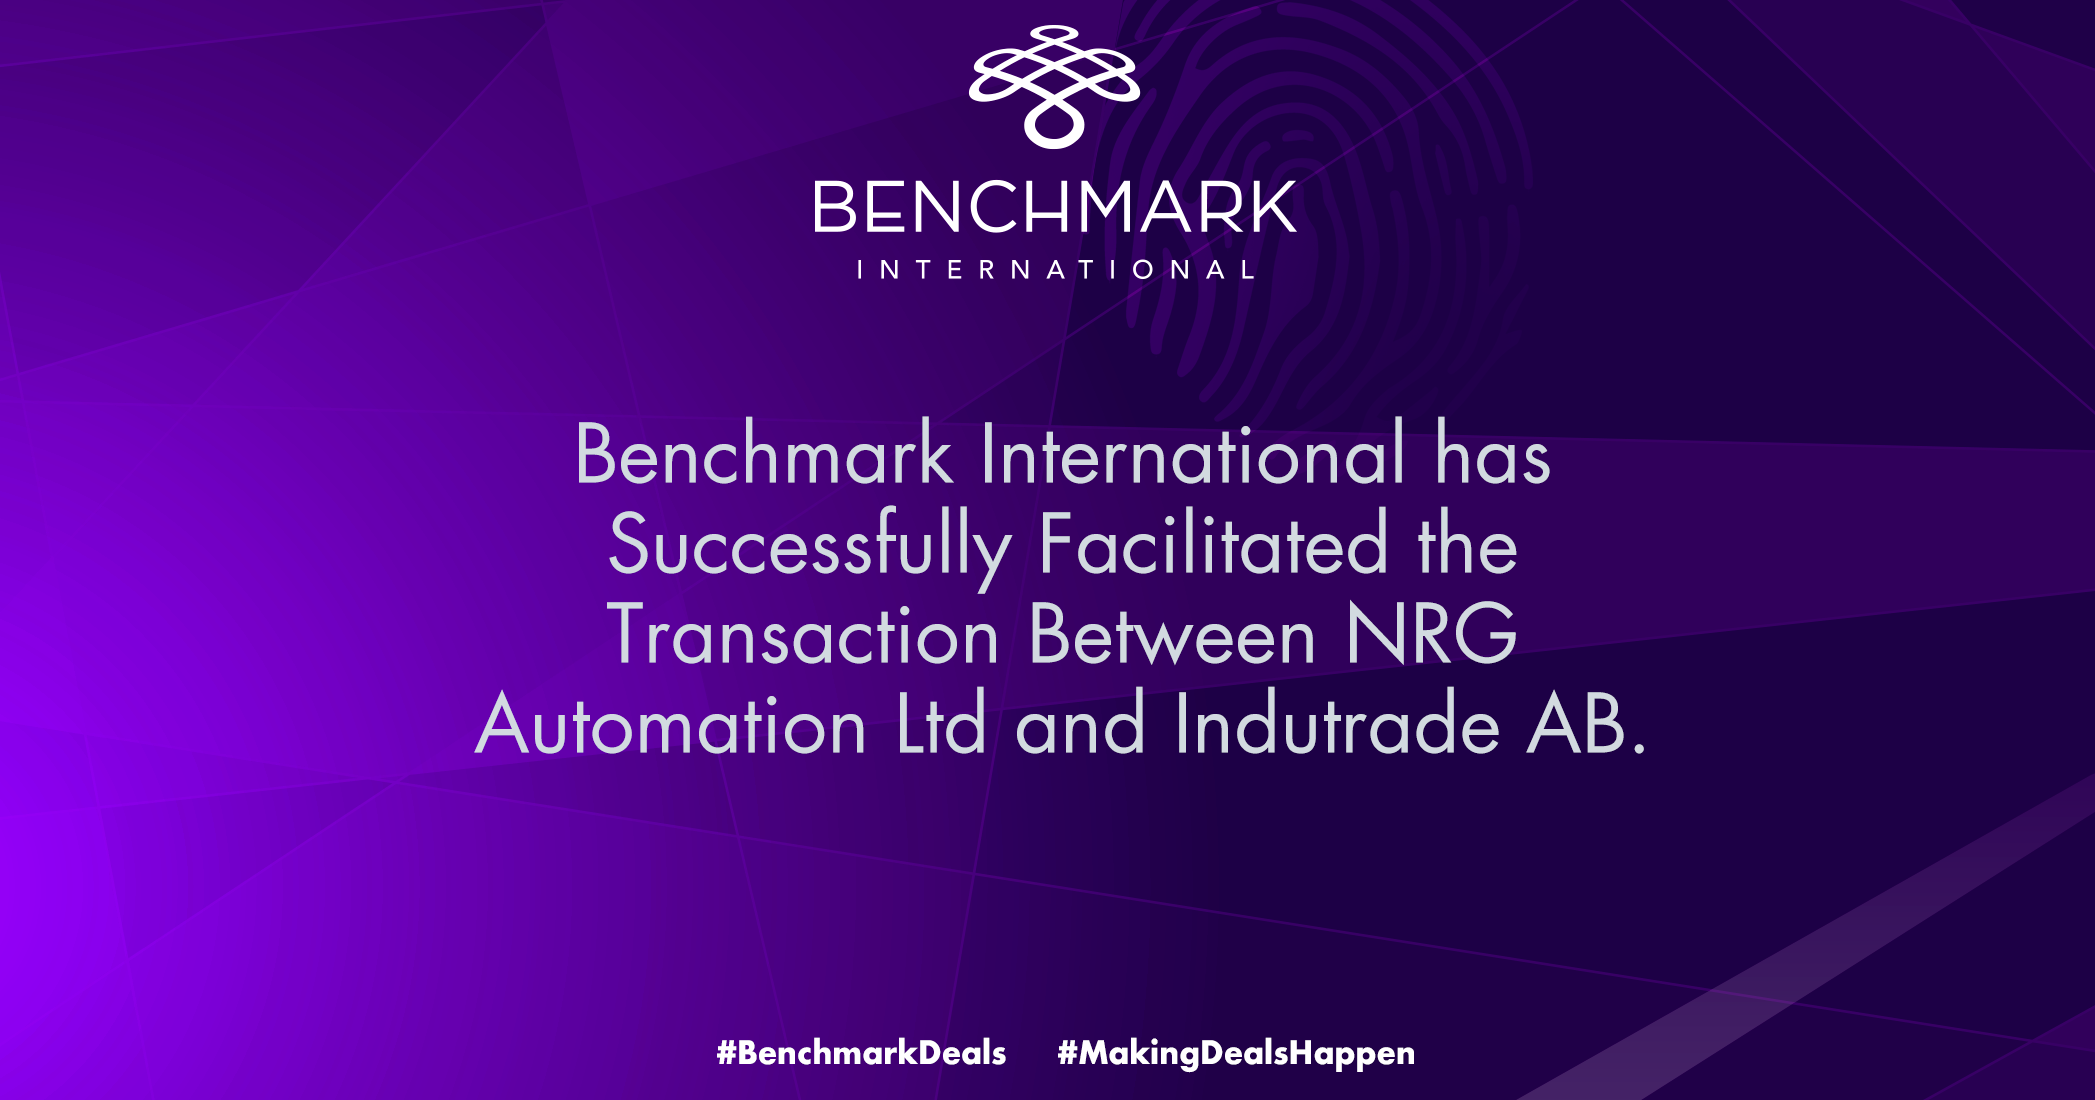 Benchmark International has Successfully Facilitated the Transaction Between NRG Automation Ltd and Indutrade AB